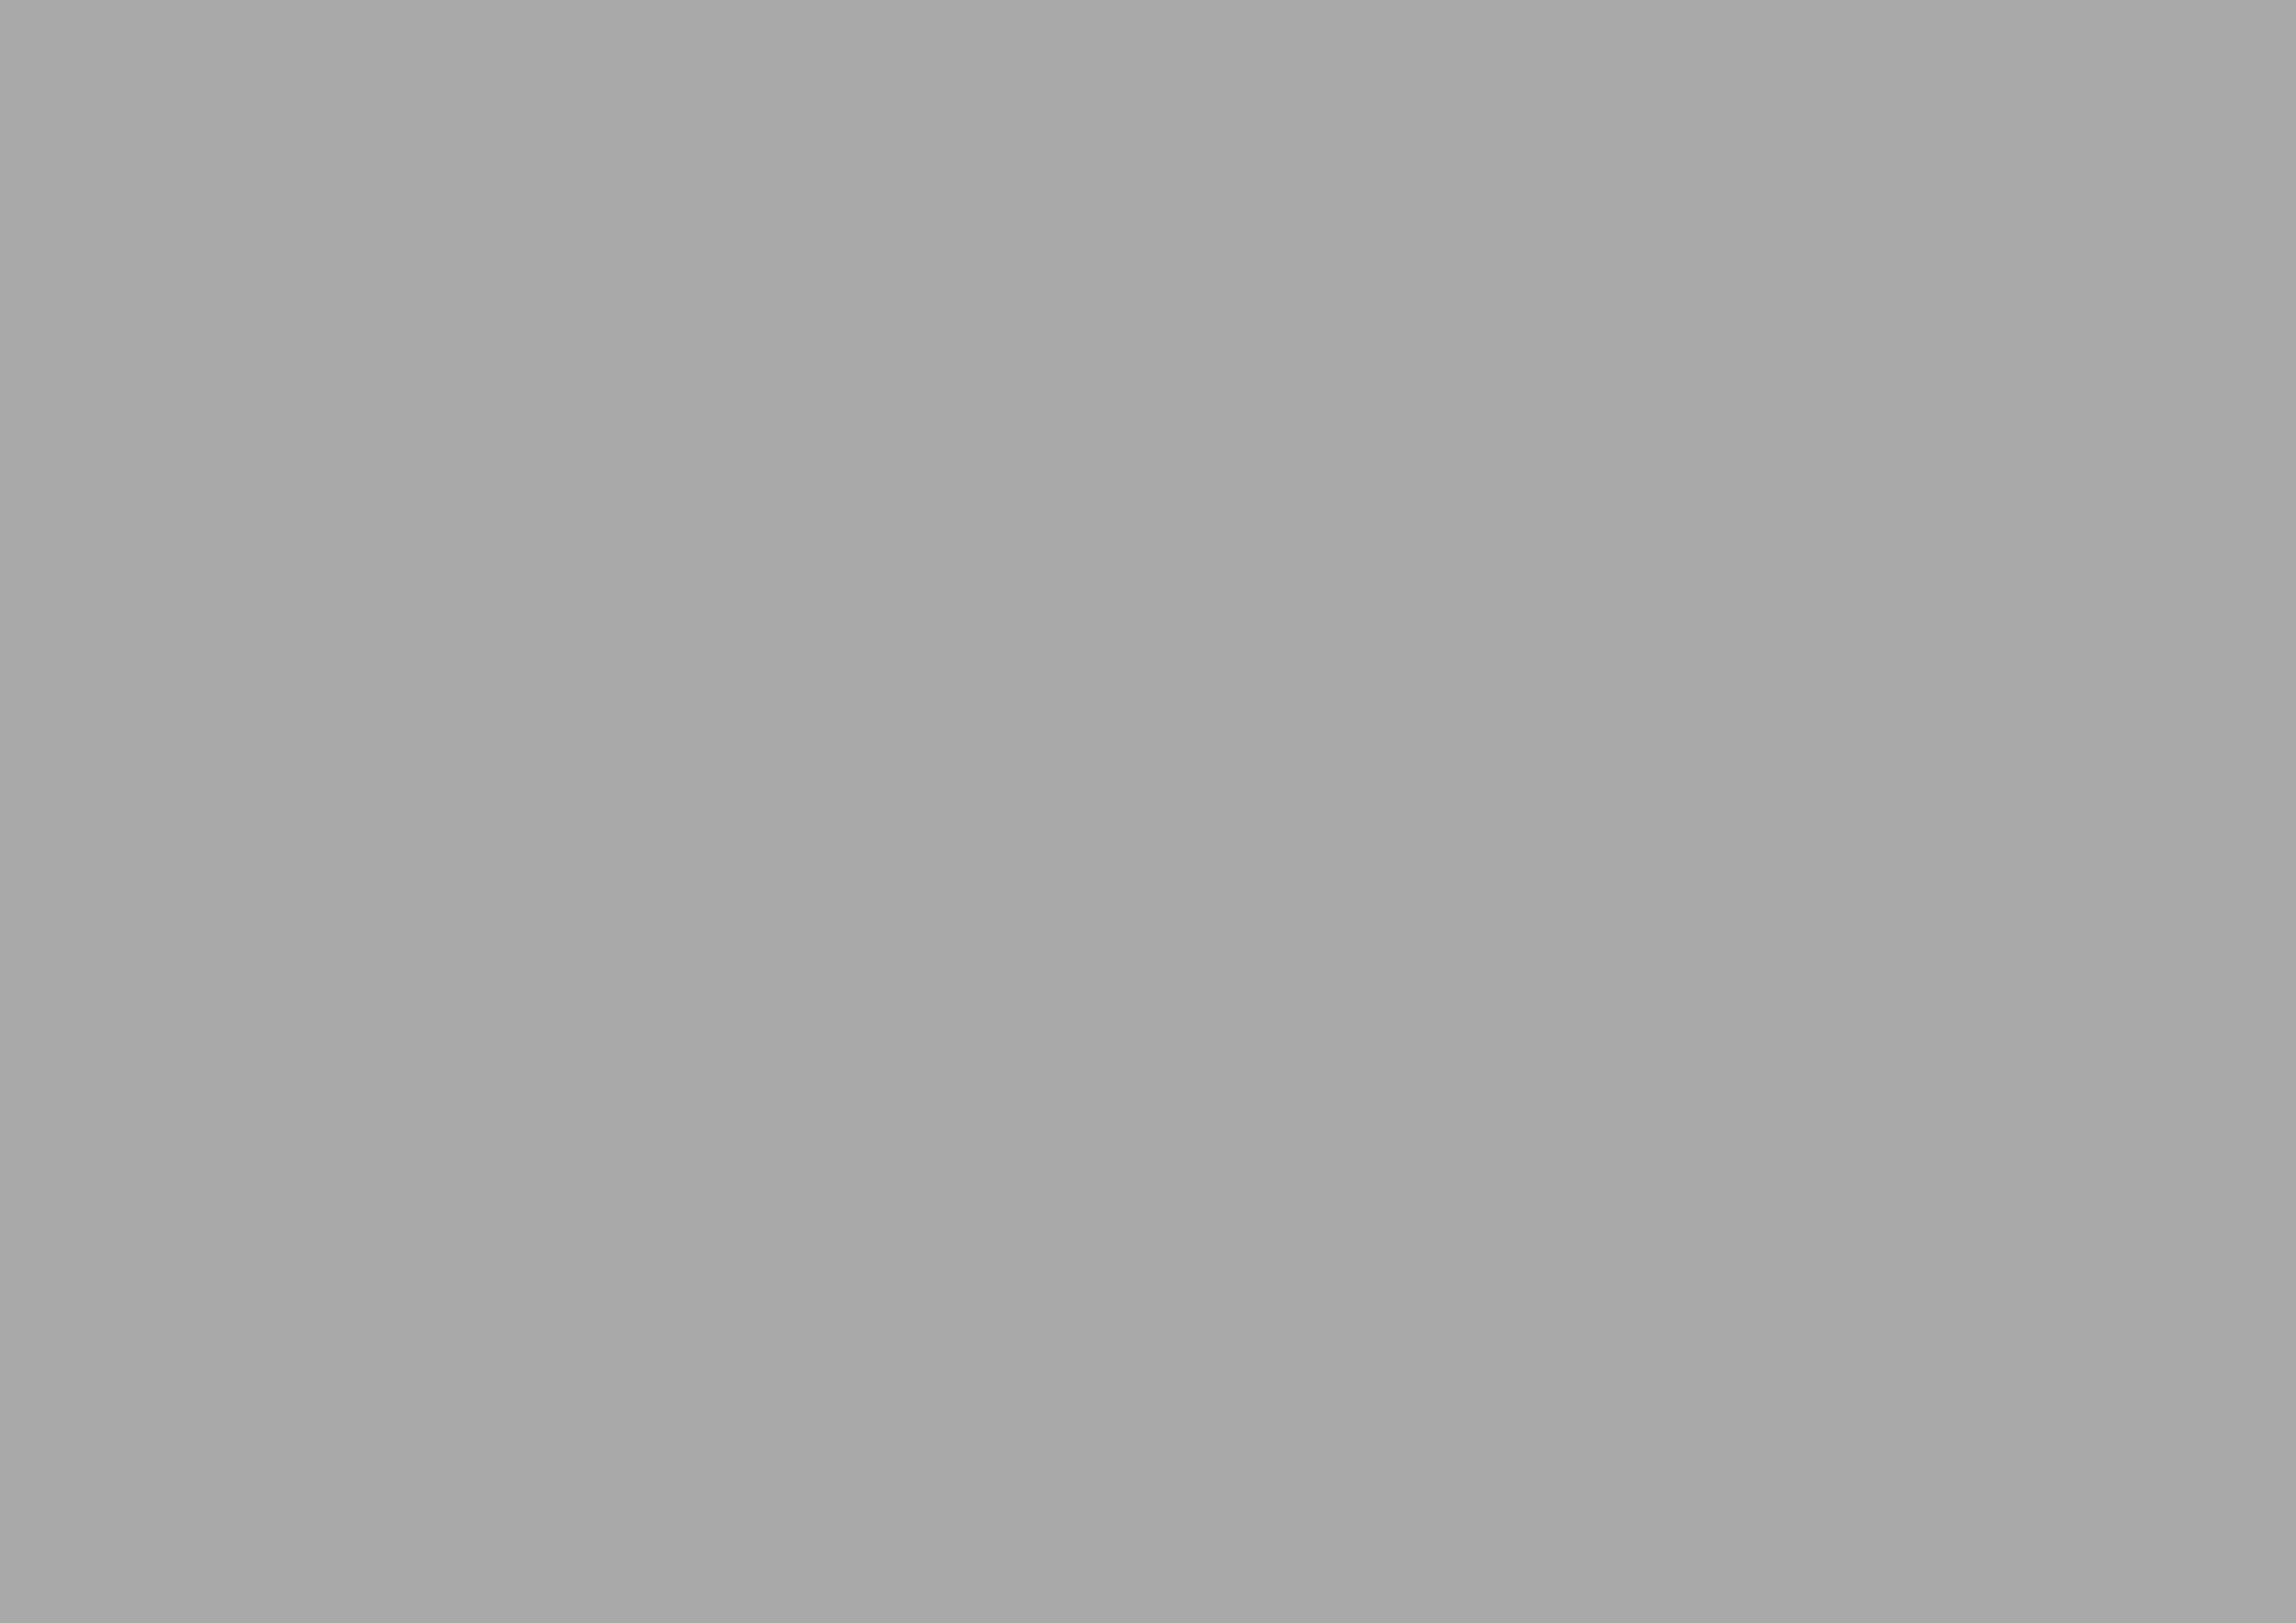 3508x2480 Dark Gray Solid Color Background